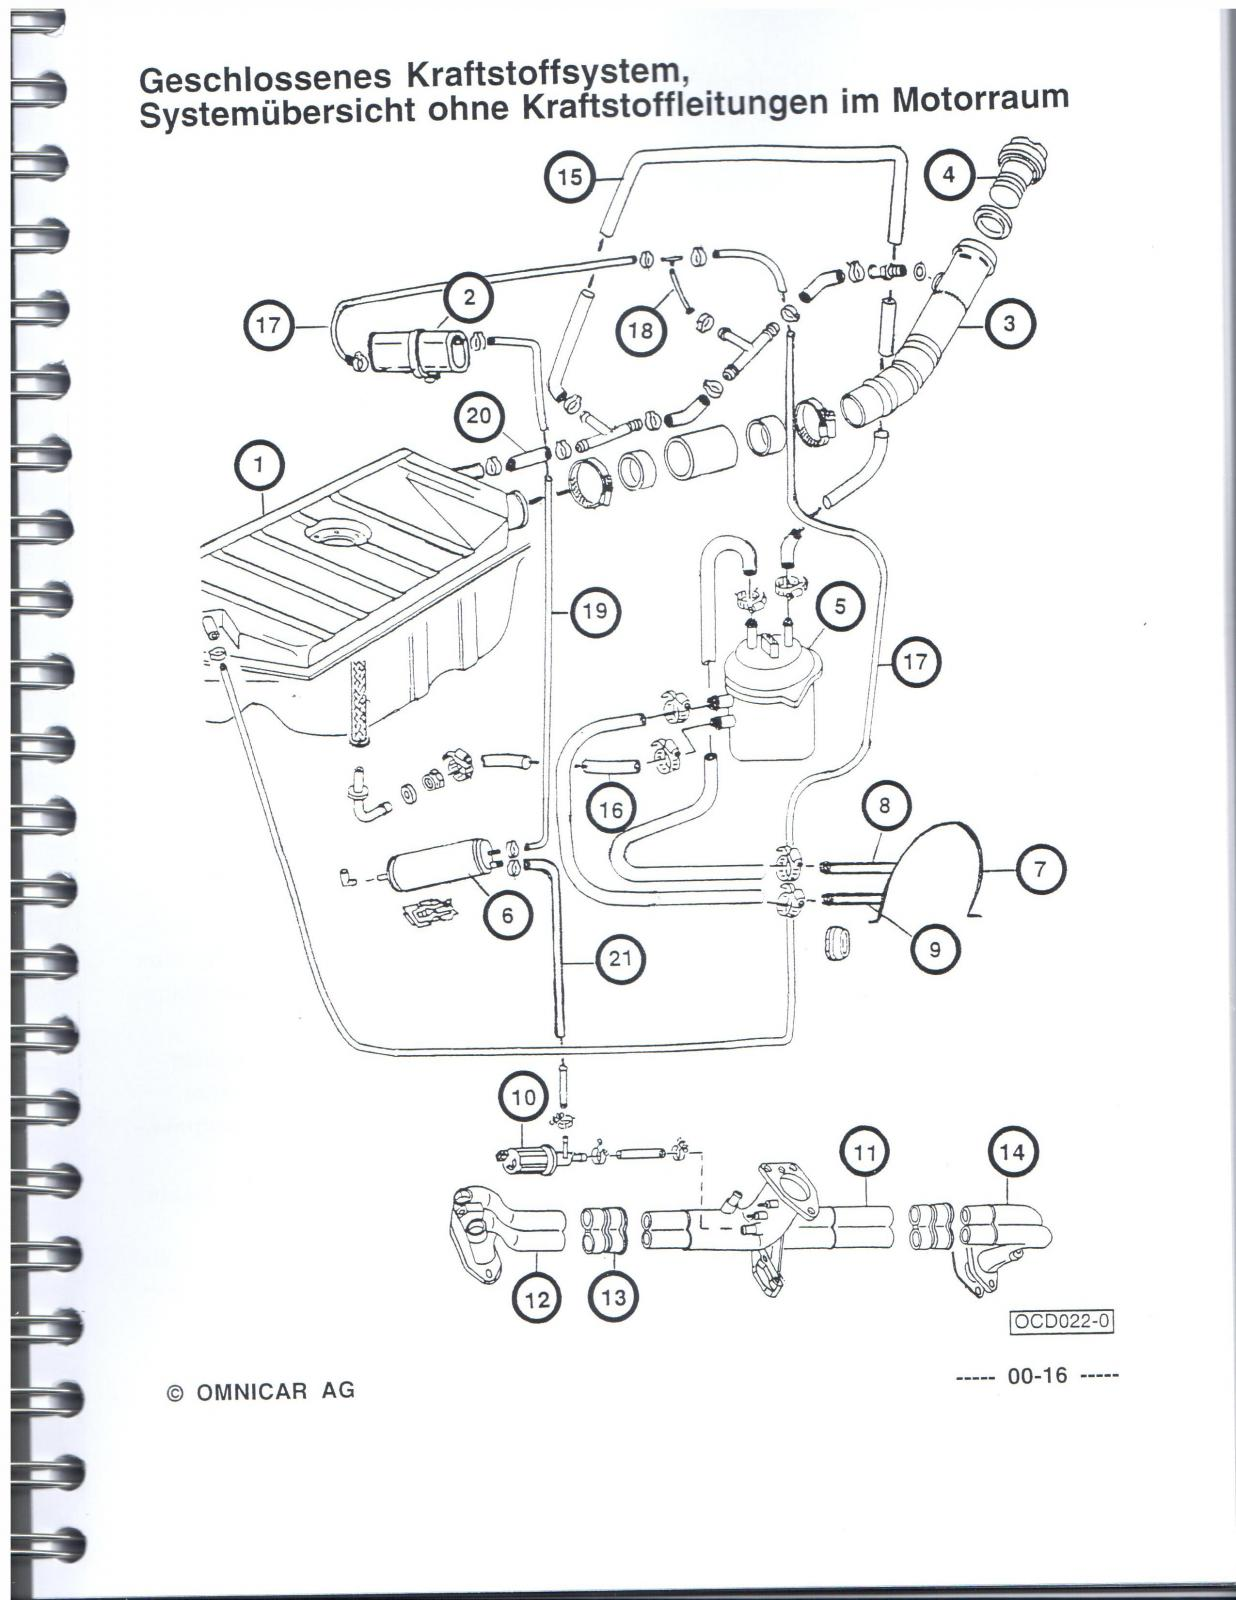 Wiring Diagram For 1975 Vw Beetle : Volkswagen beetle wiring diagram auto